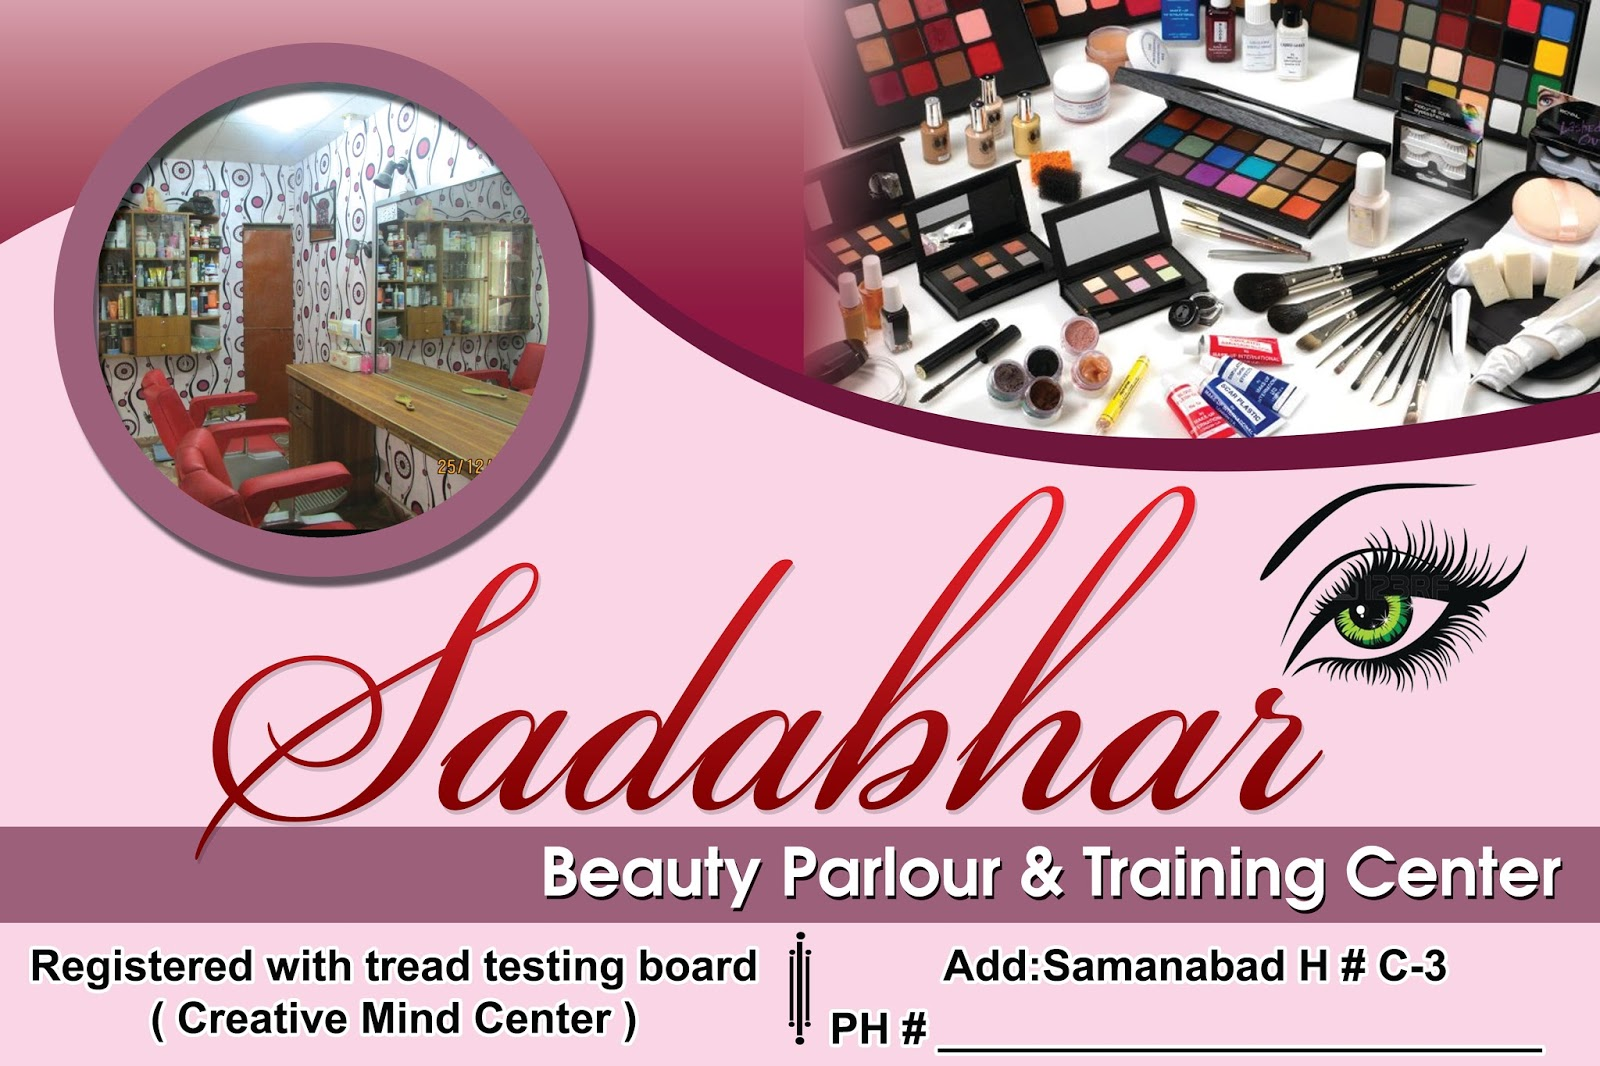 Sadabhar Beauty Parlor Banner Design